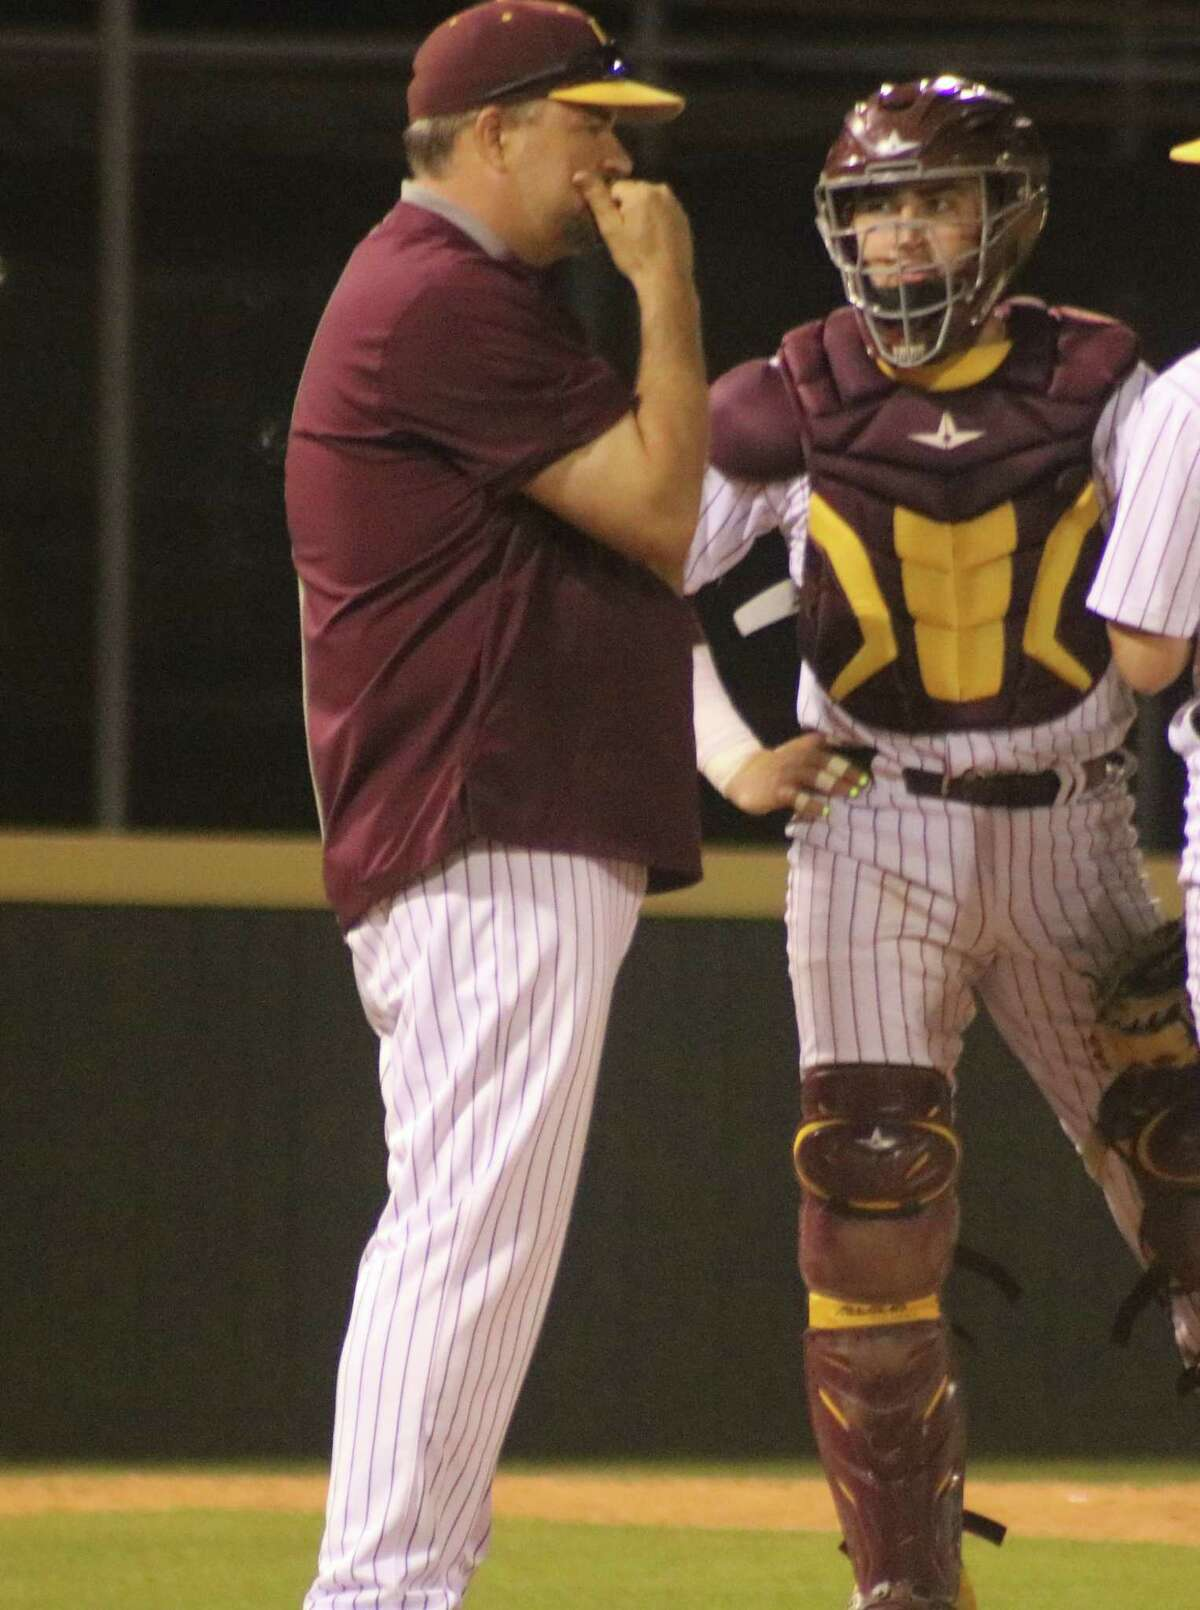 Deer Park assistant coach Donnie Elliott, the former San Diego Padres pitcher, finds himself a week behind schedule after the winter storm wiped out two scrimmages. Elliott has five days to come up with a pitching staff. But three scrimmages in the upcoming days should help.